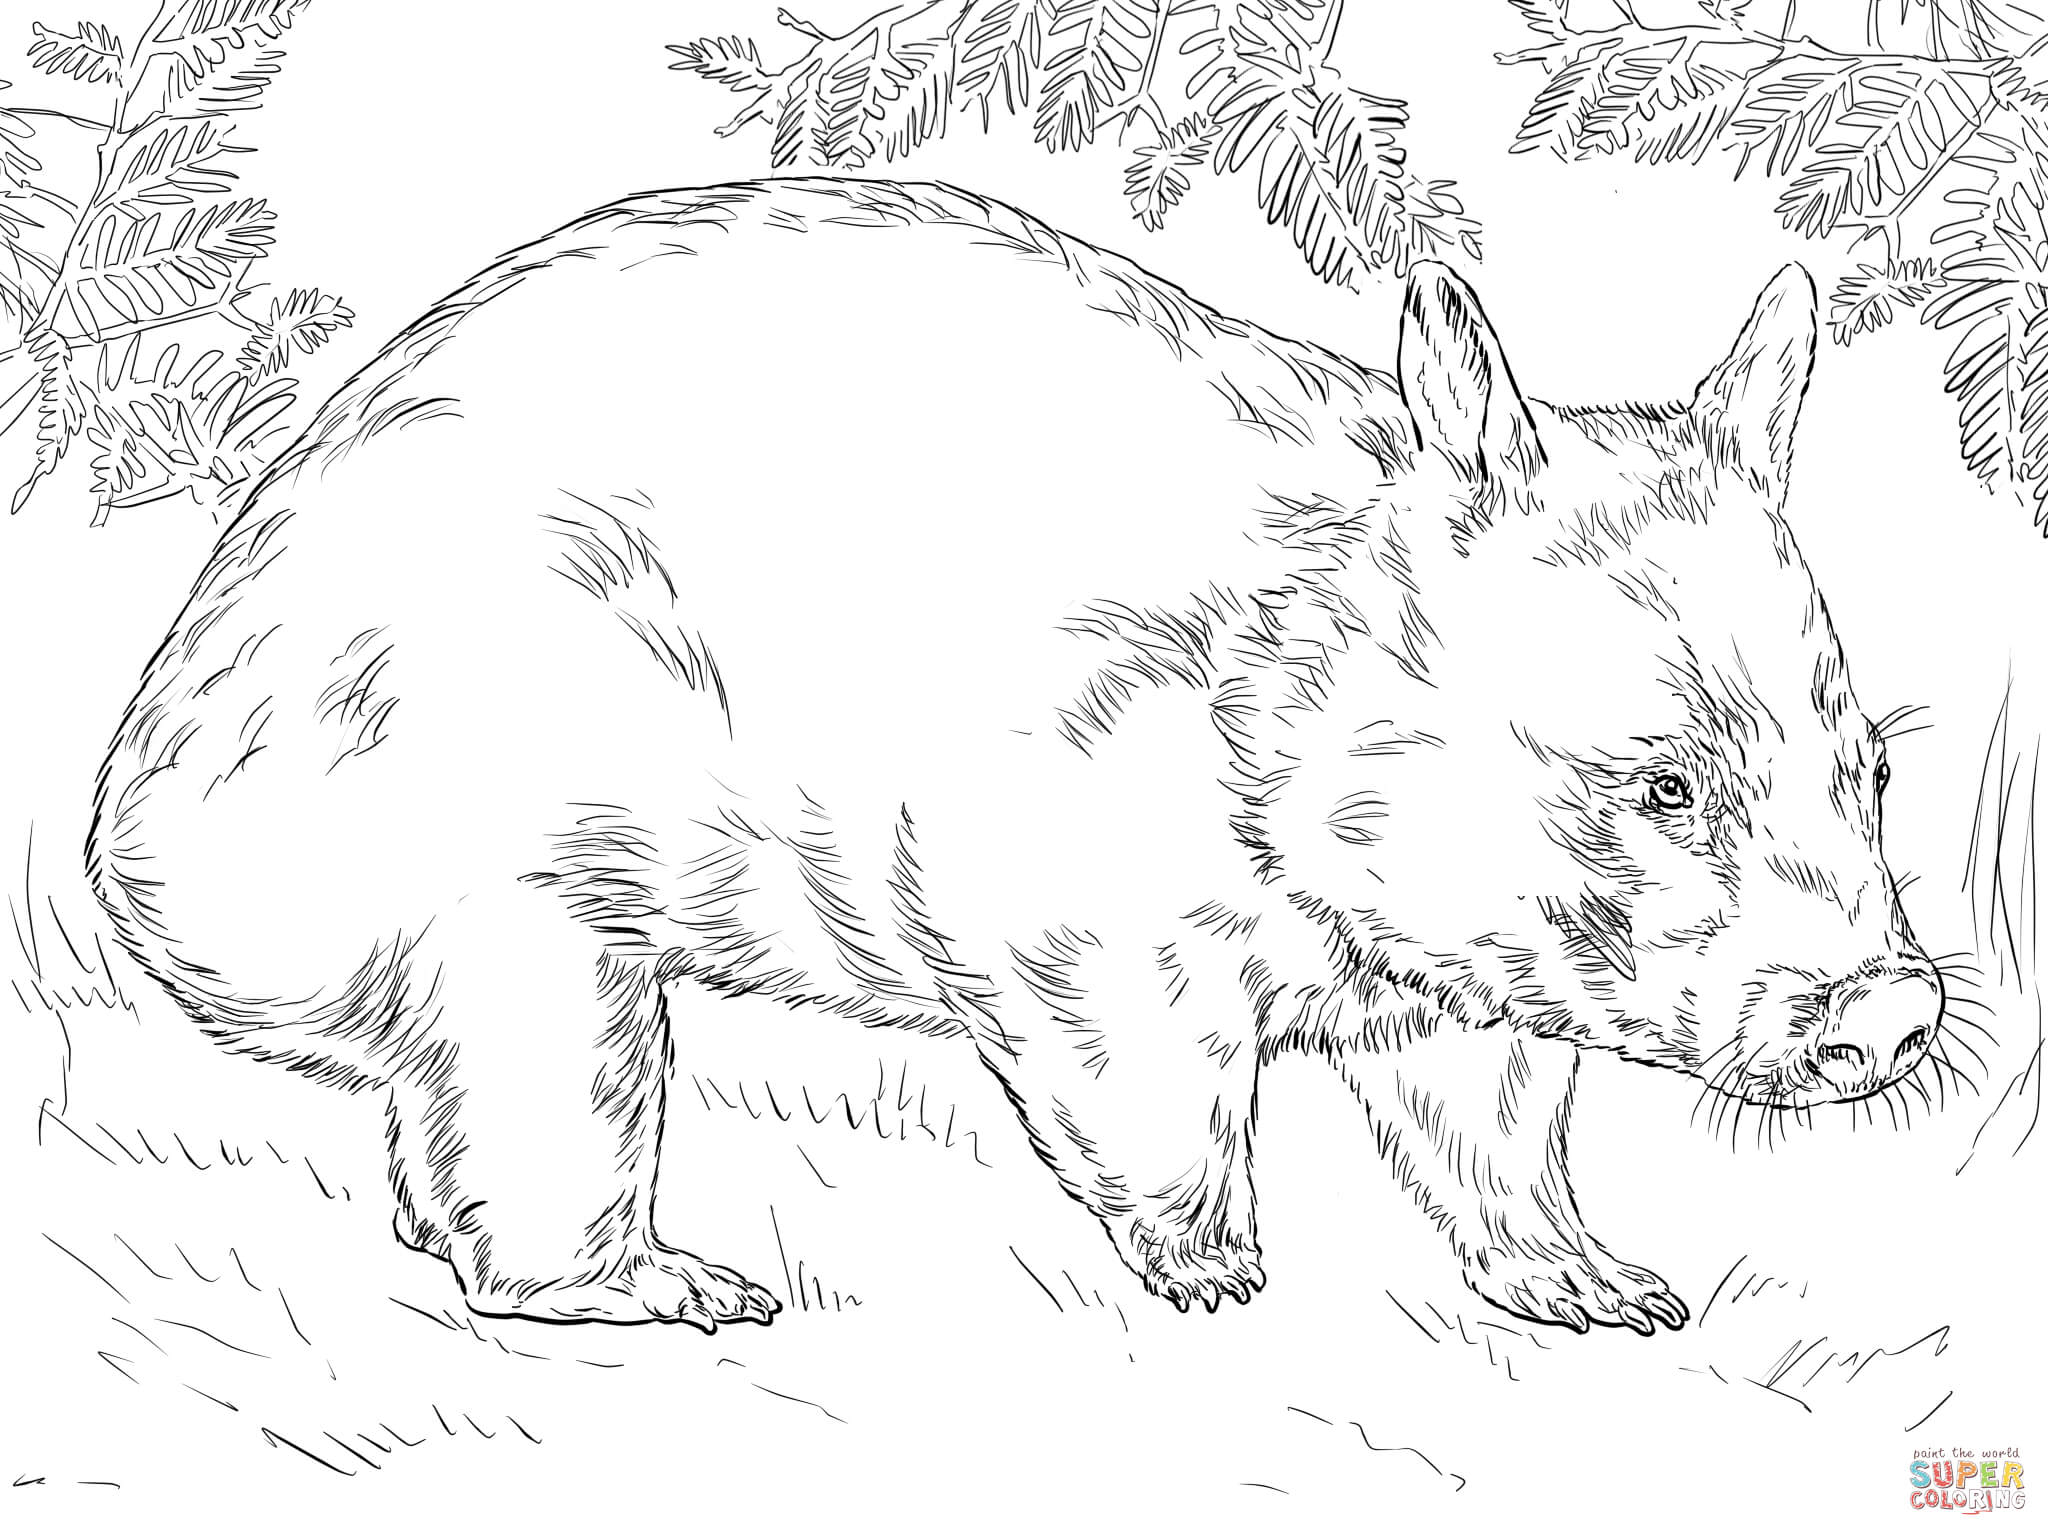 wombat colouring pages 26 best wombats images on pinterest wombat photo art colouring pages wombat